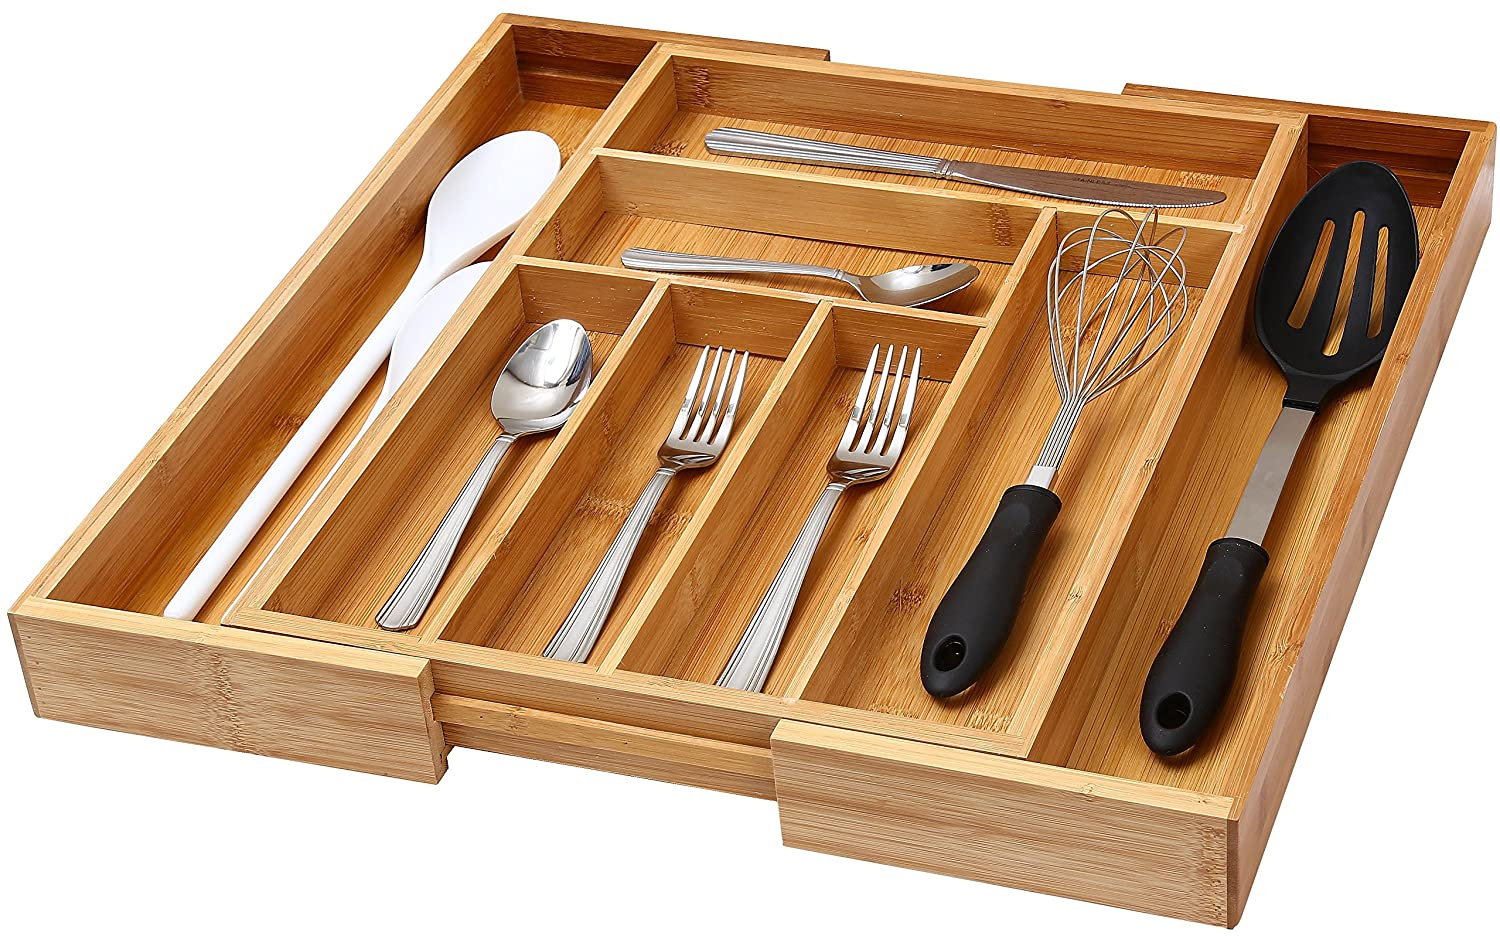 makeup utensil flatware large shocking custom compartments organizer how of size in silverware diy dividers target kitchen make ikea bamboo a cardboard wood full inserts to drawer